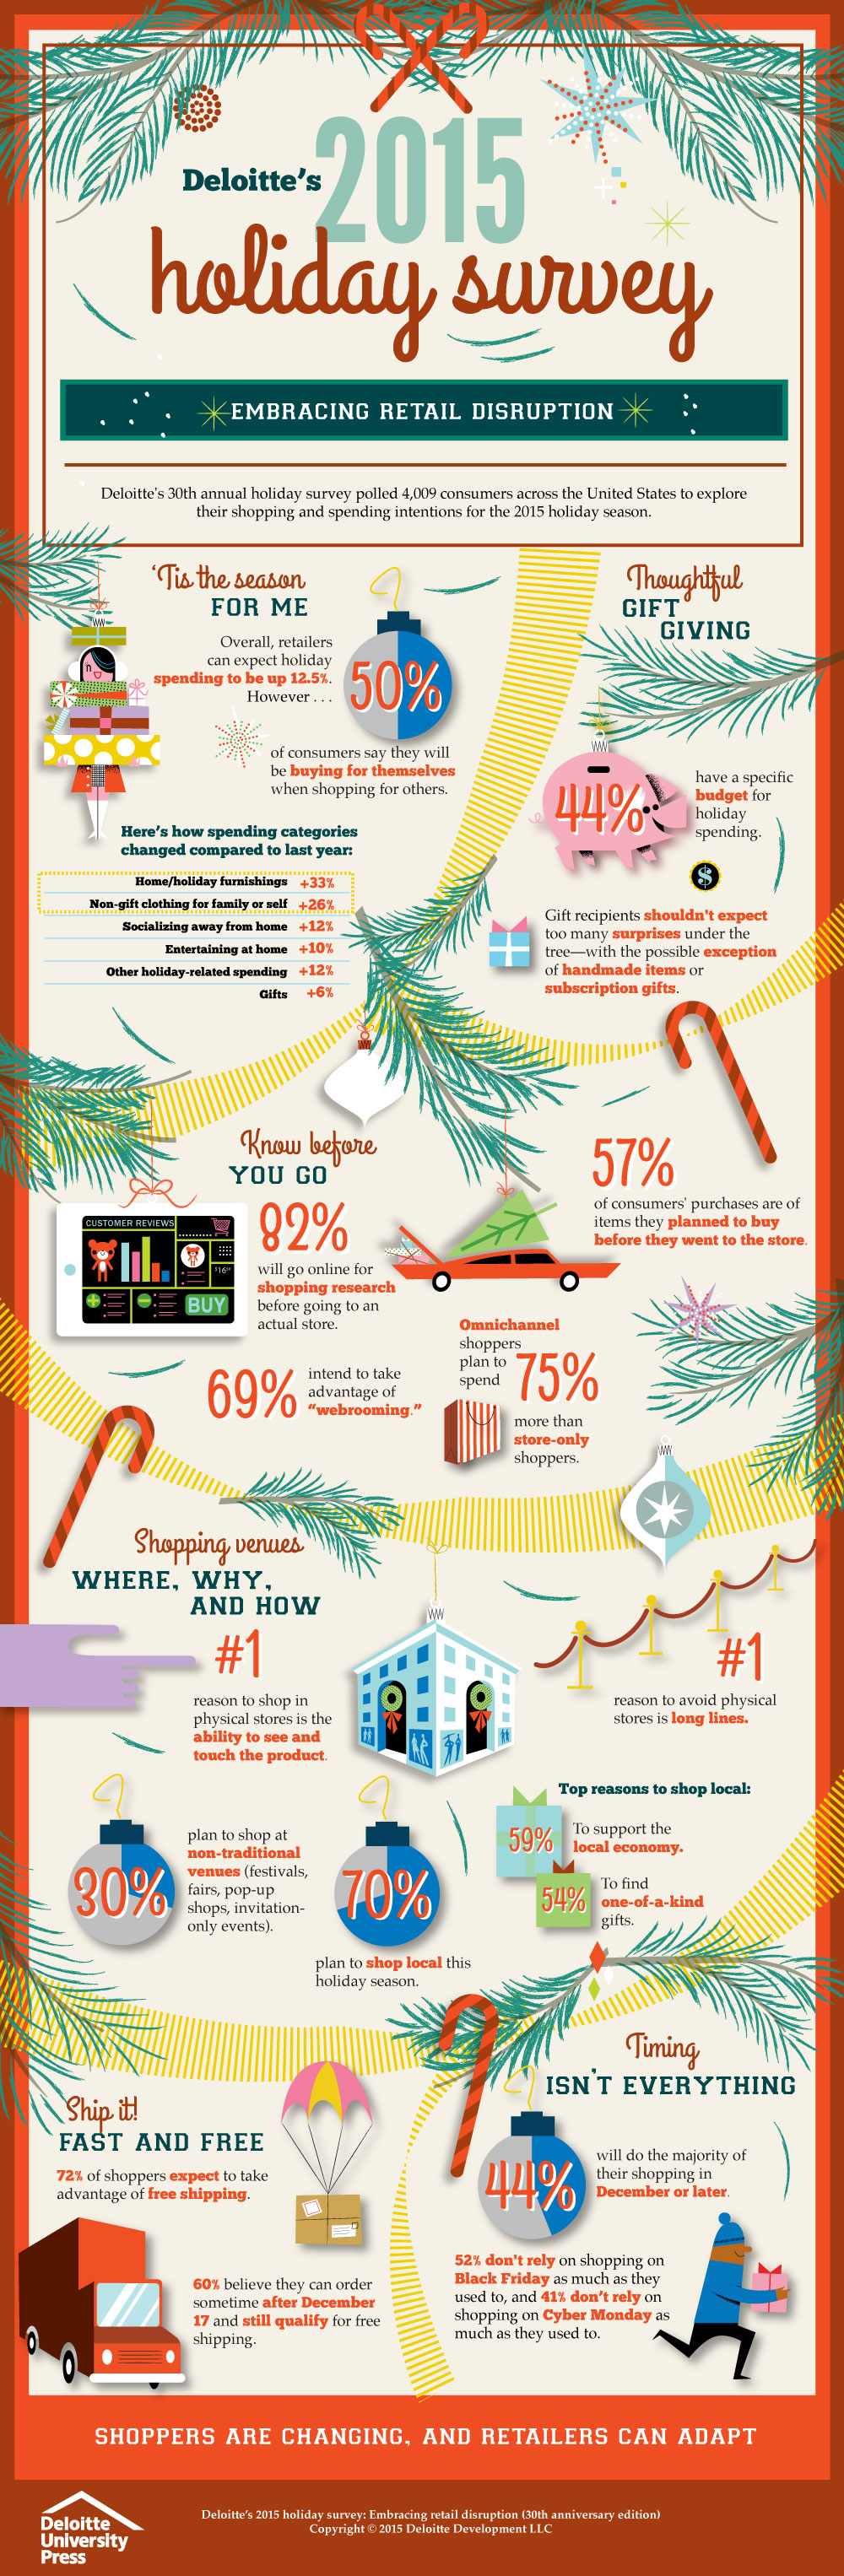 Deloitte's 2015 holiday survey